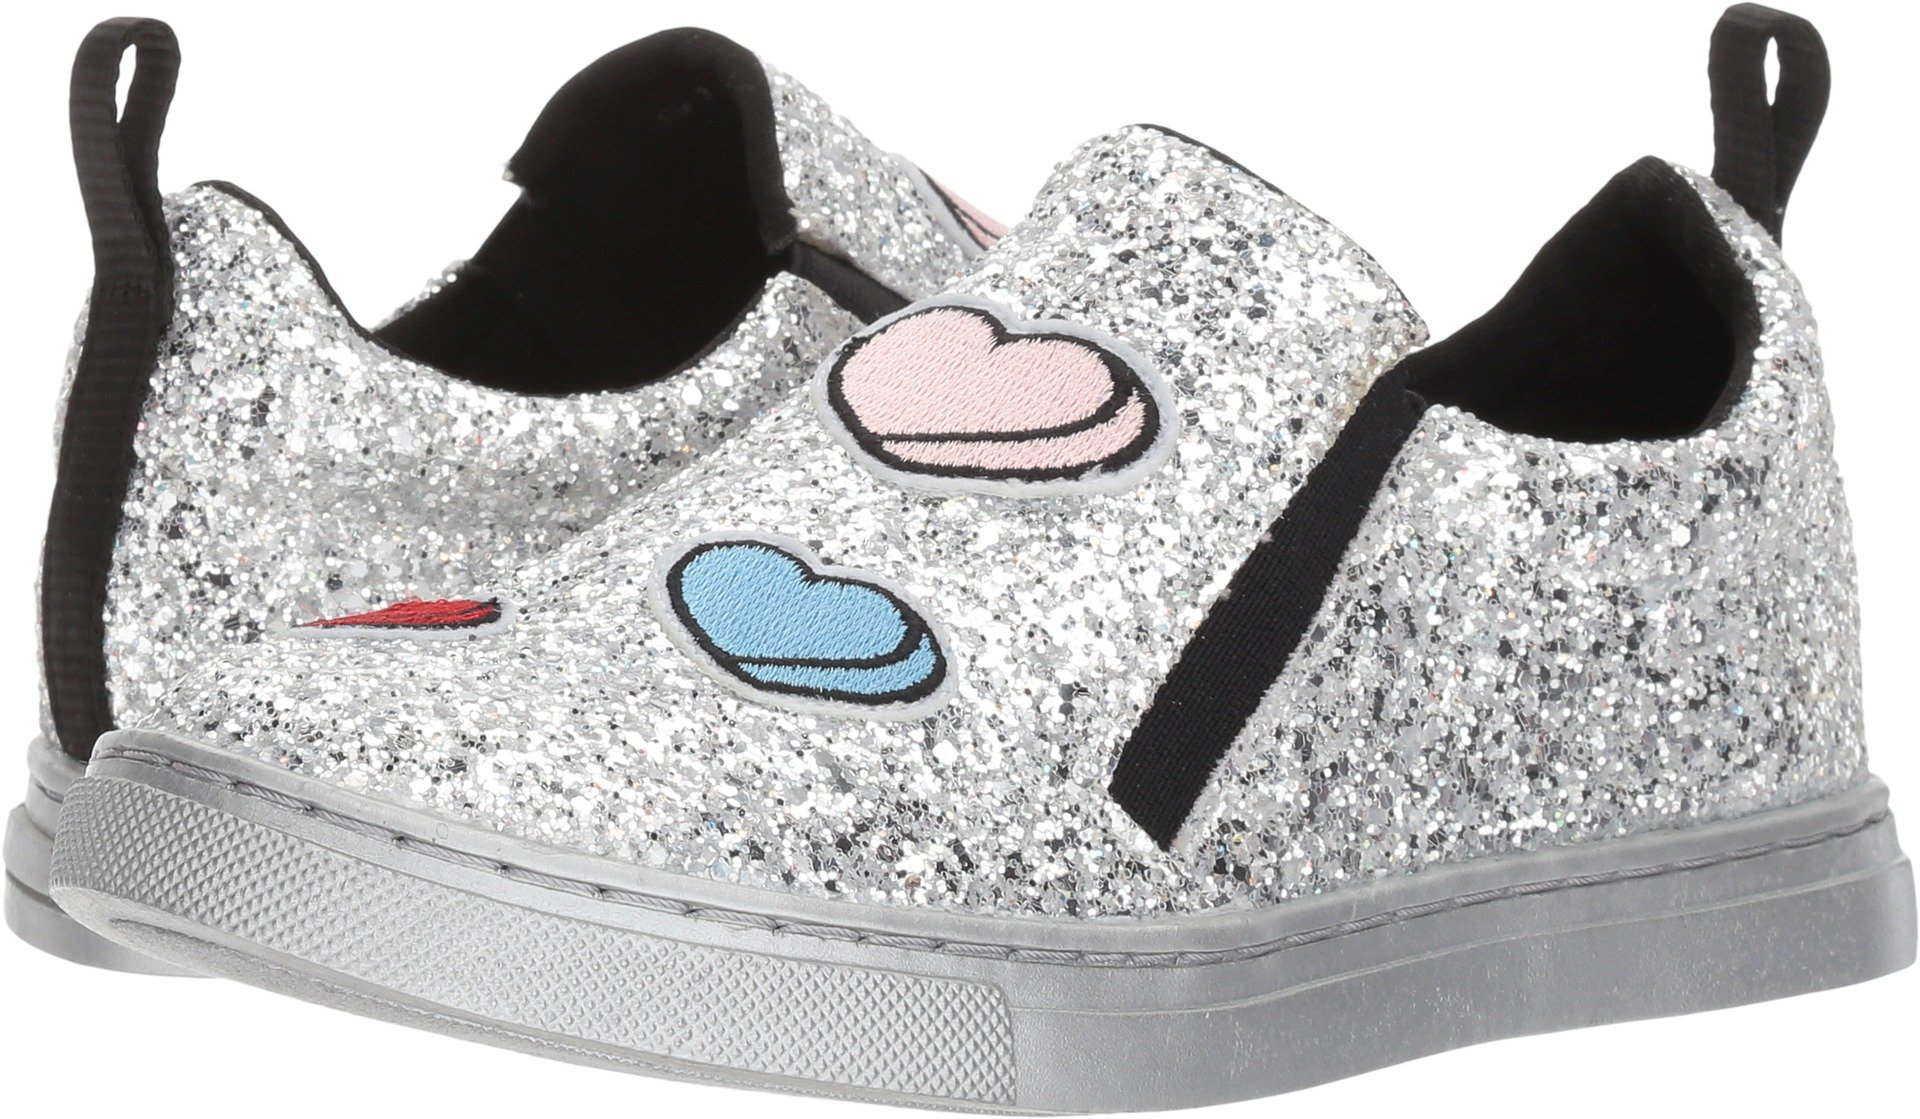 Dolce Vita Girls' Zach Sneaker, Silver Multi Glitter, 3 Medium US Little Kid